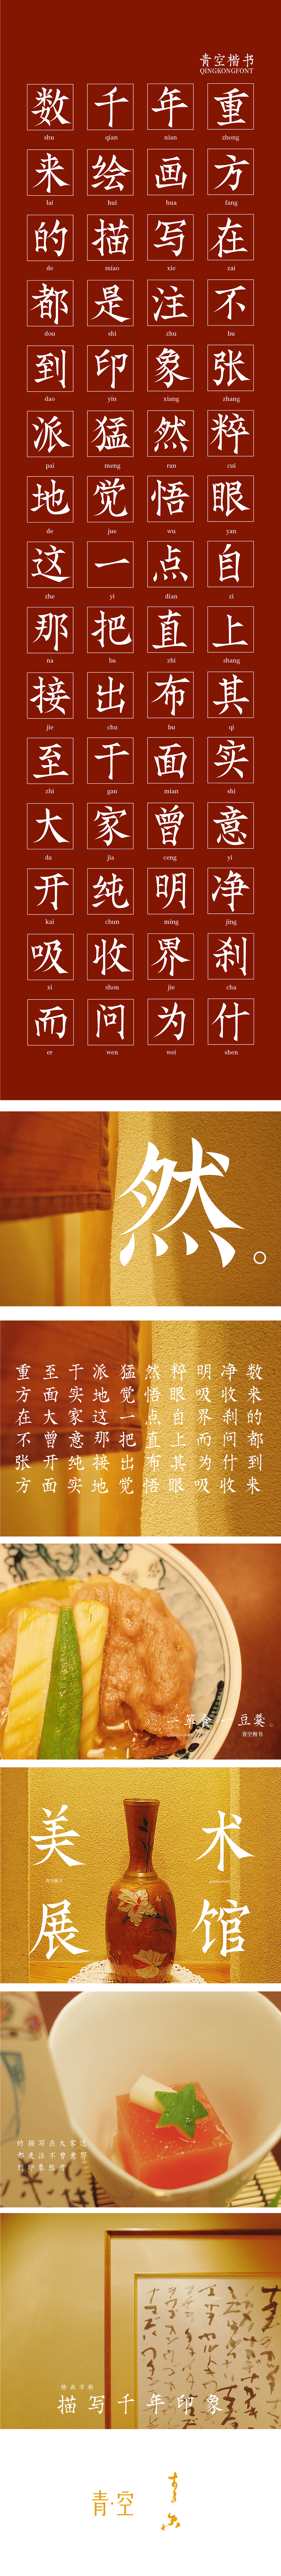 Chinese Creative Font Design-Draw strokes from calligraphy, and set the radicals in Qingkong regular script